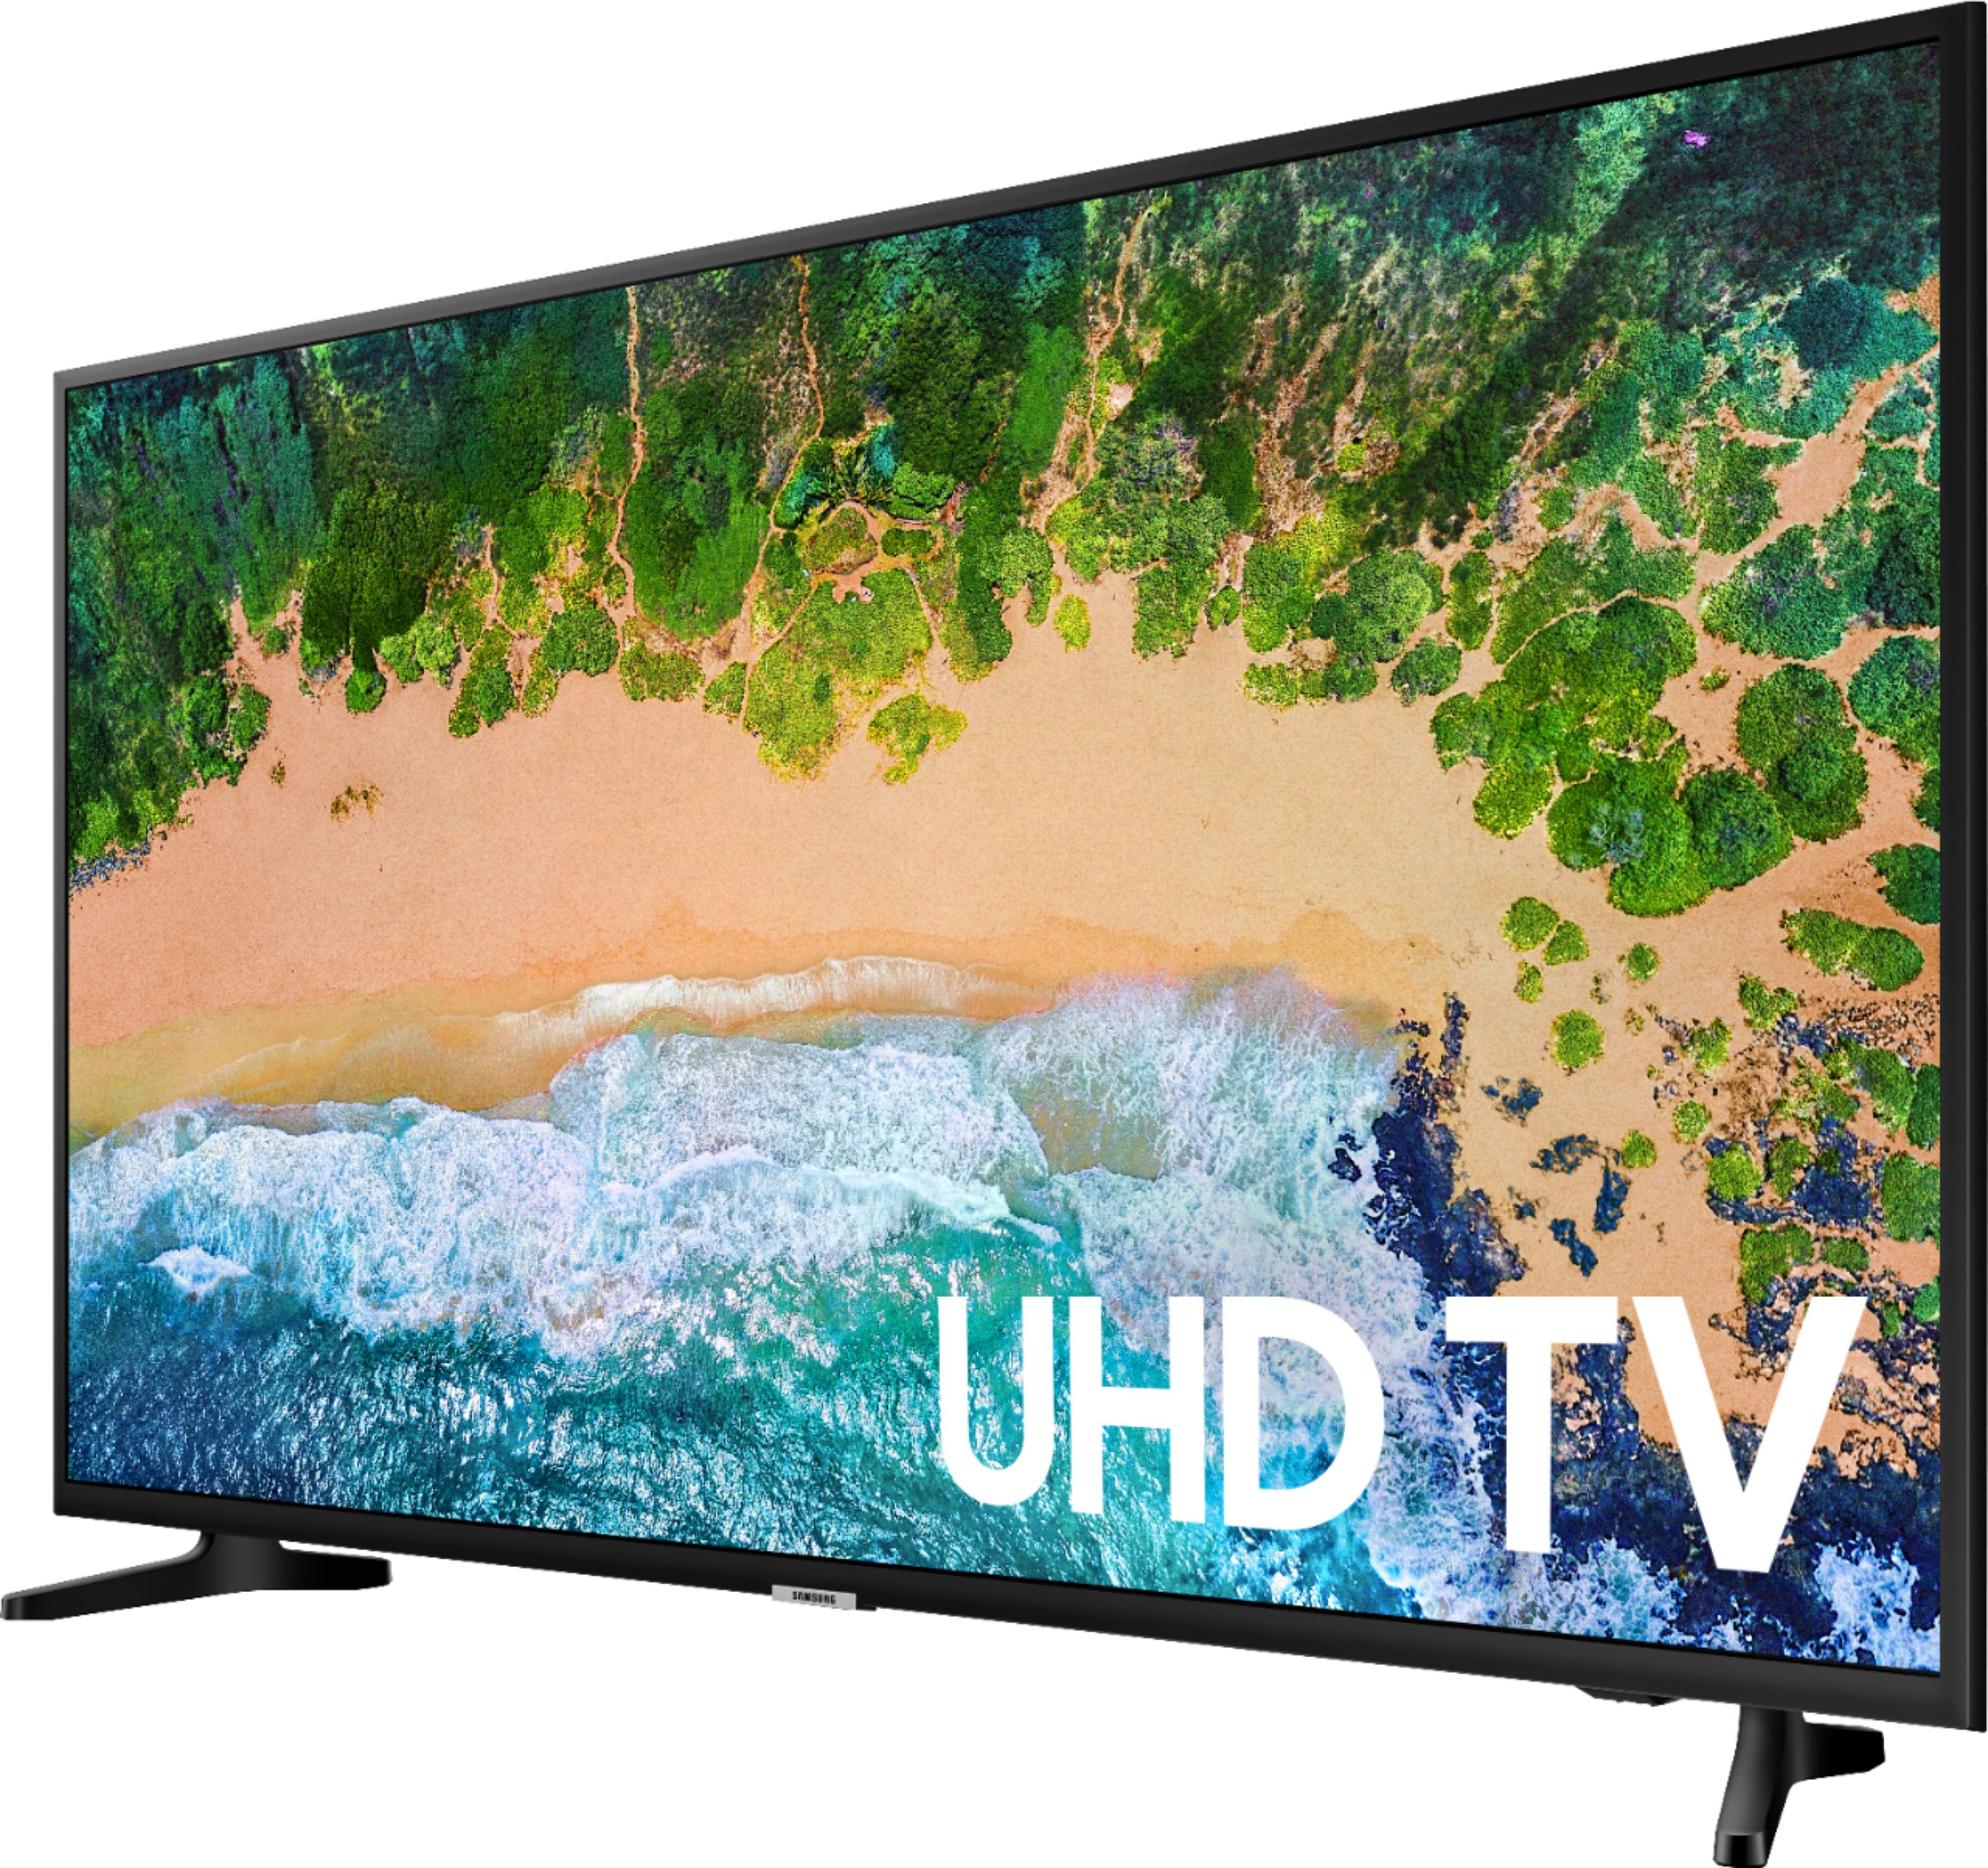 Samsung Flat Screen Tv Price Samsung 55